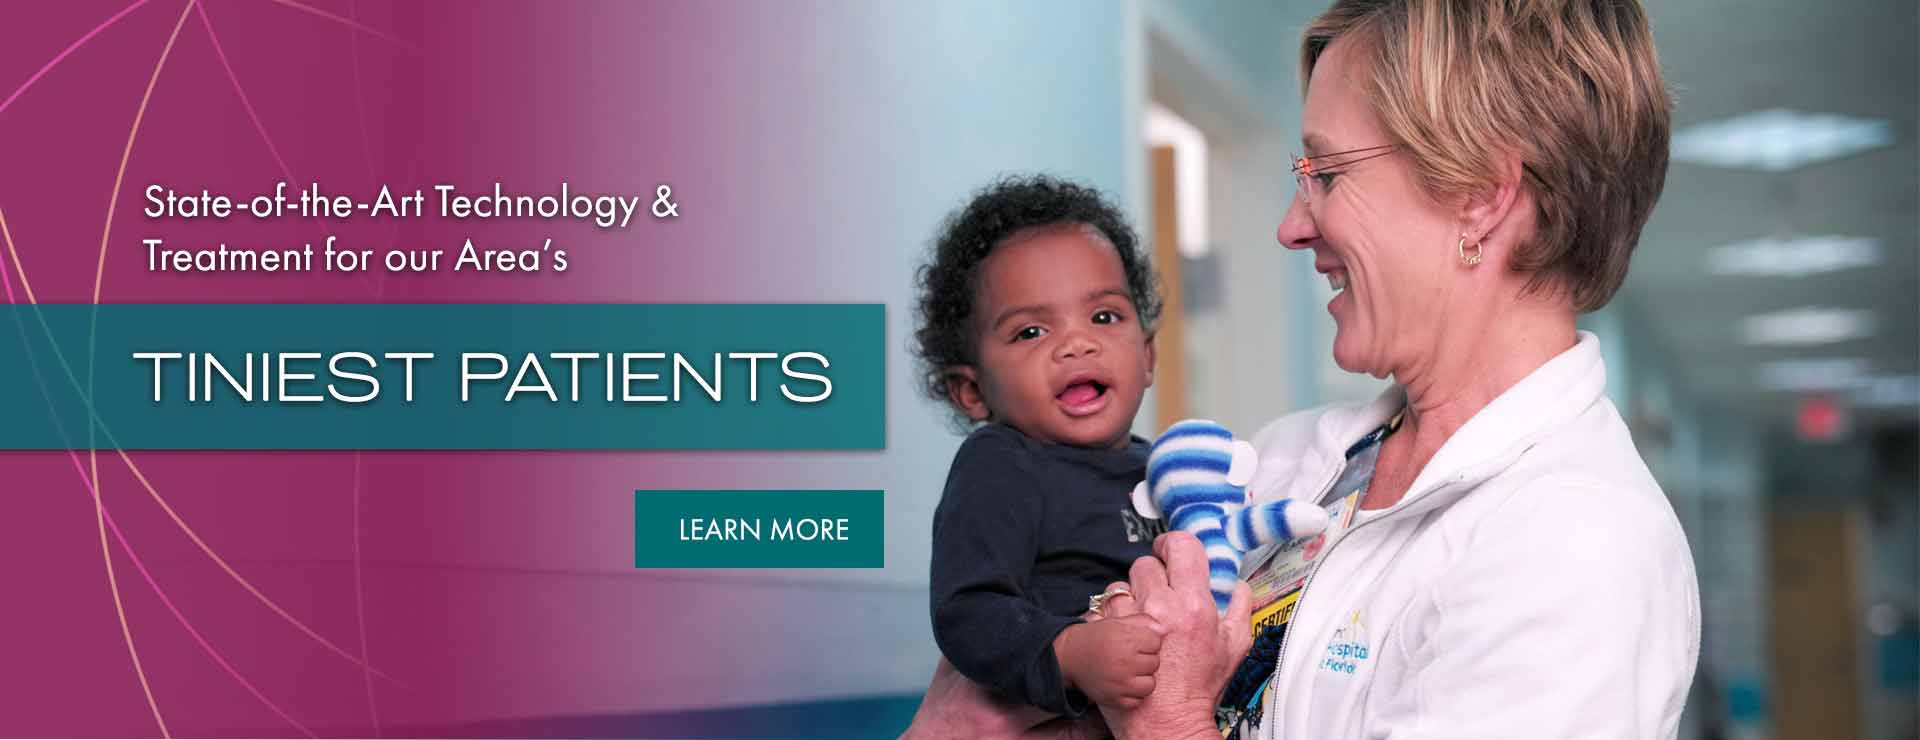 SWFL Children's Charity Doctor holding Baby Boy by Priority Marketing